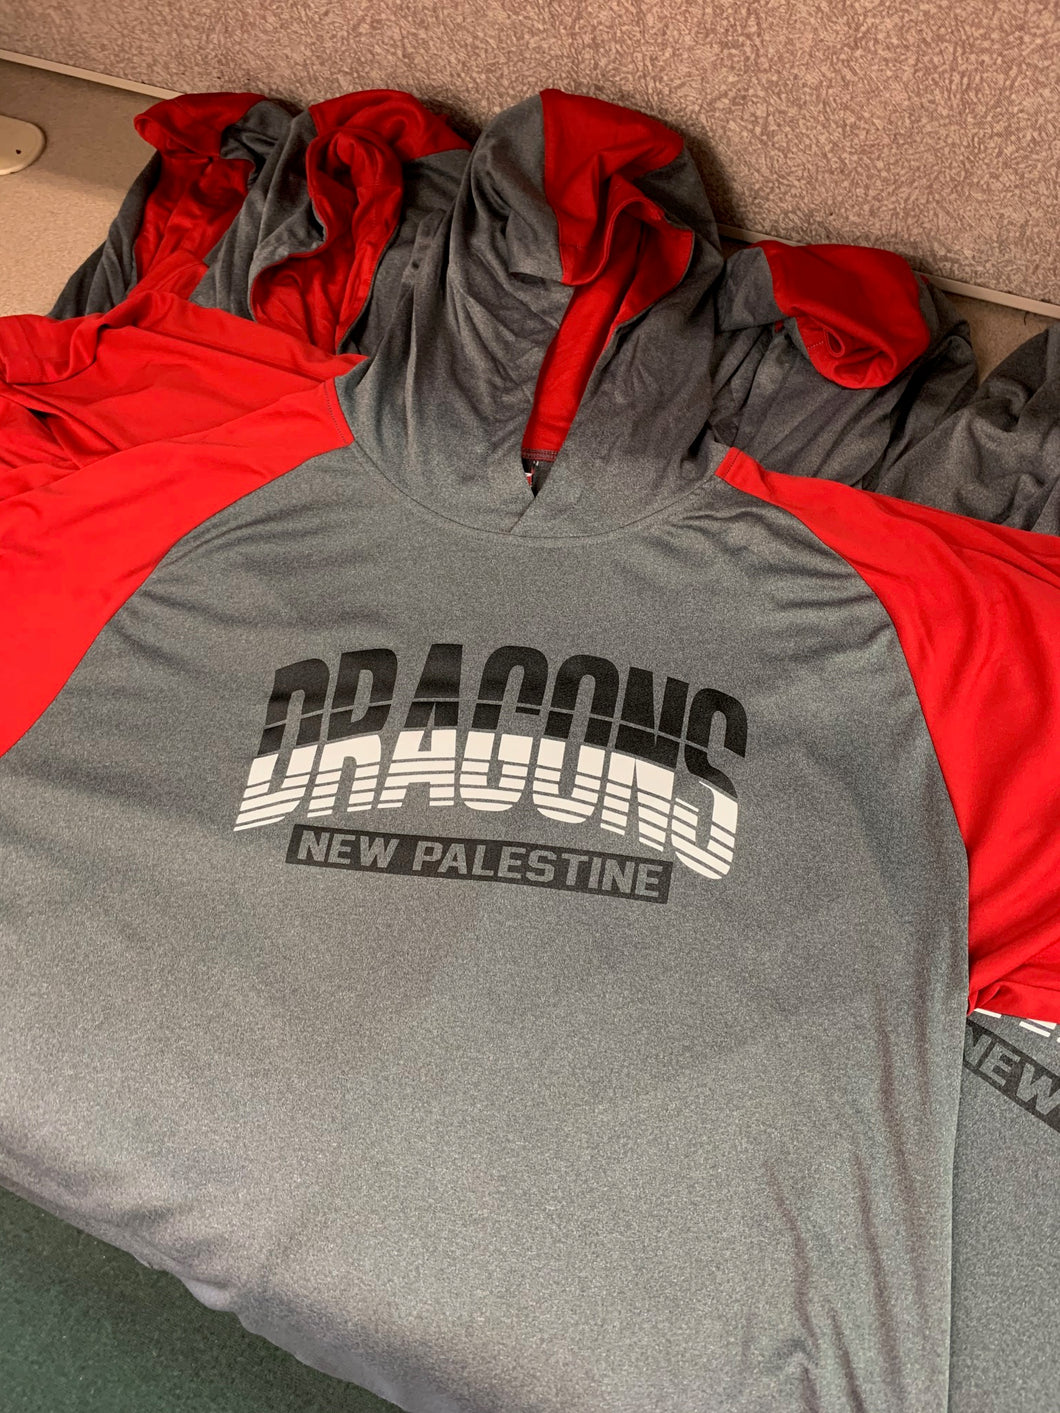 Red/Grey Athlectic LS Adult